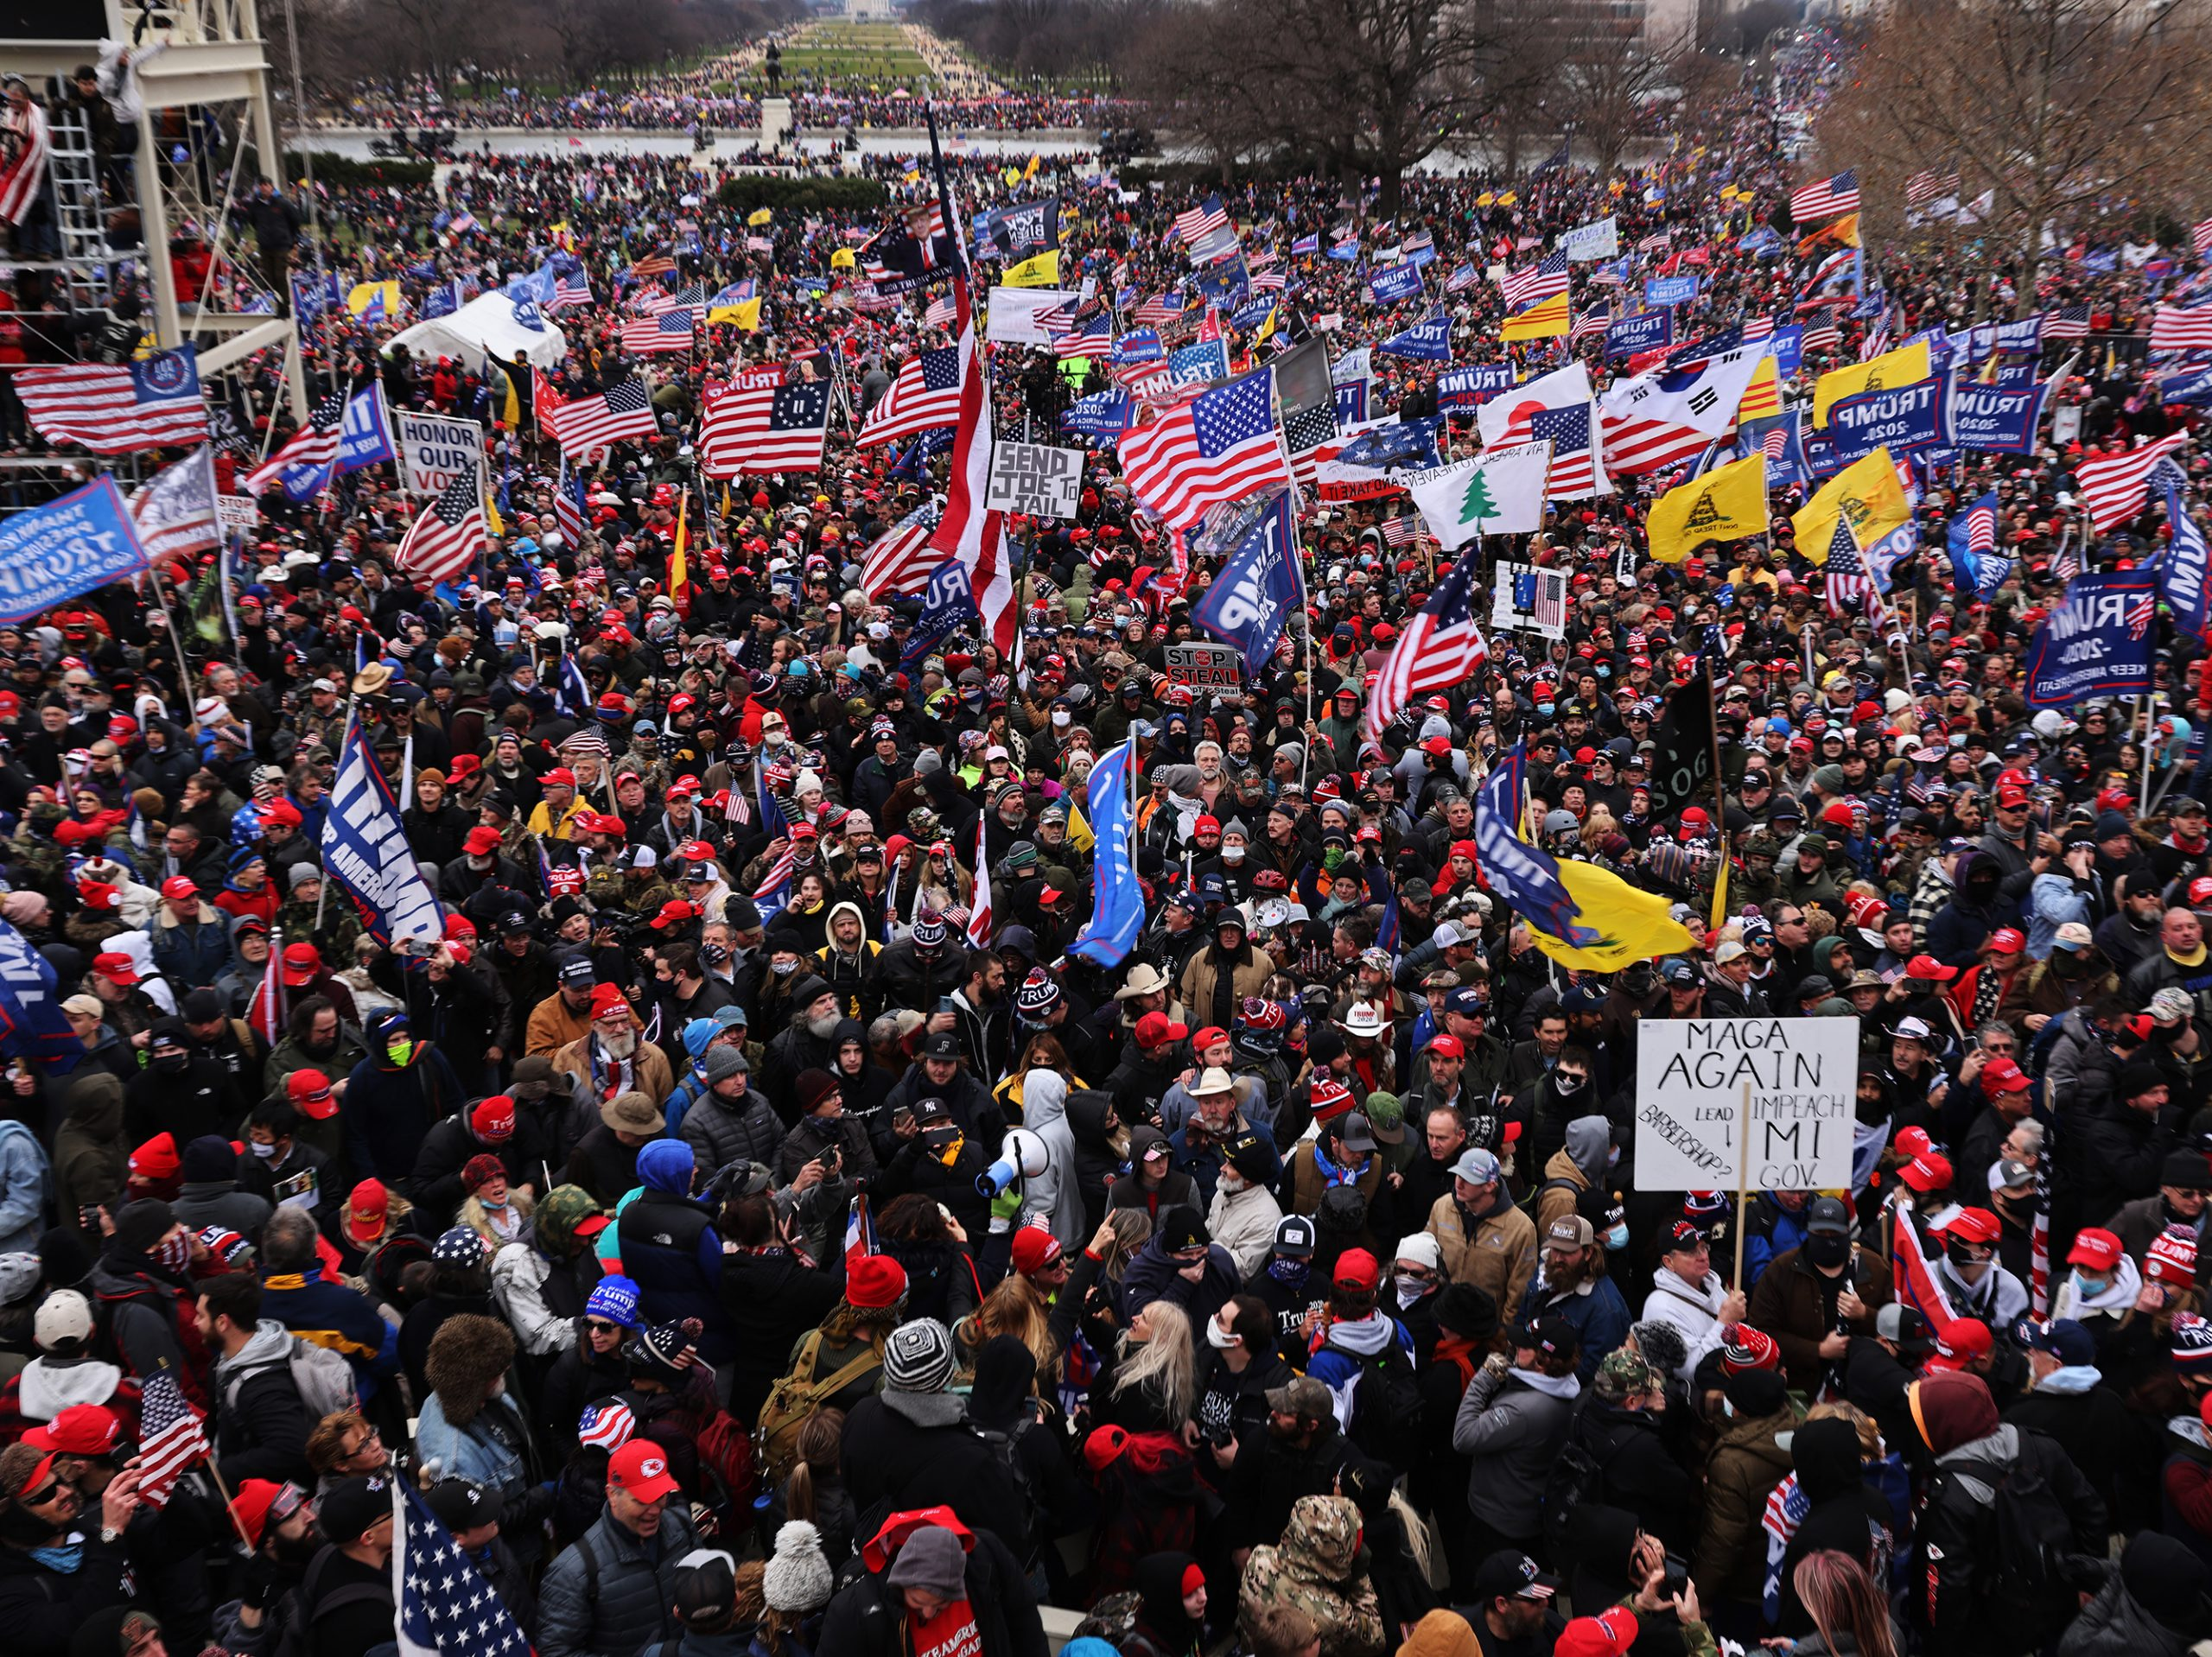 """Thousands of Trump supporters gather outside the U.S. Capitol following a """"Stop the Steal"""" rally on Jan. 6. They stormed the historic building, breaking windows and clashing with police. Nearly two months later some 250 rioters are facing charges, including Richard Michetti of Pennsylvania."""